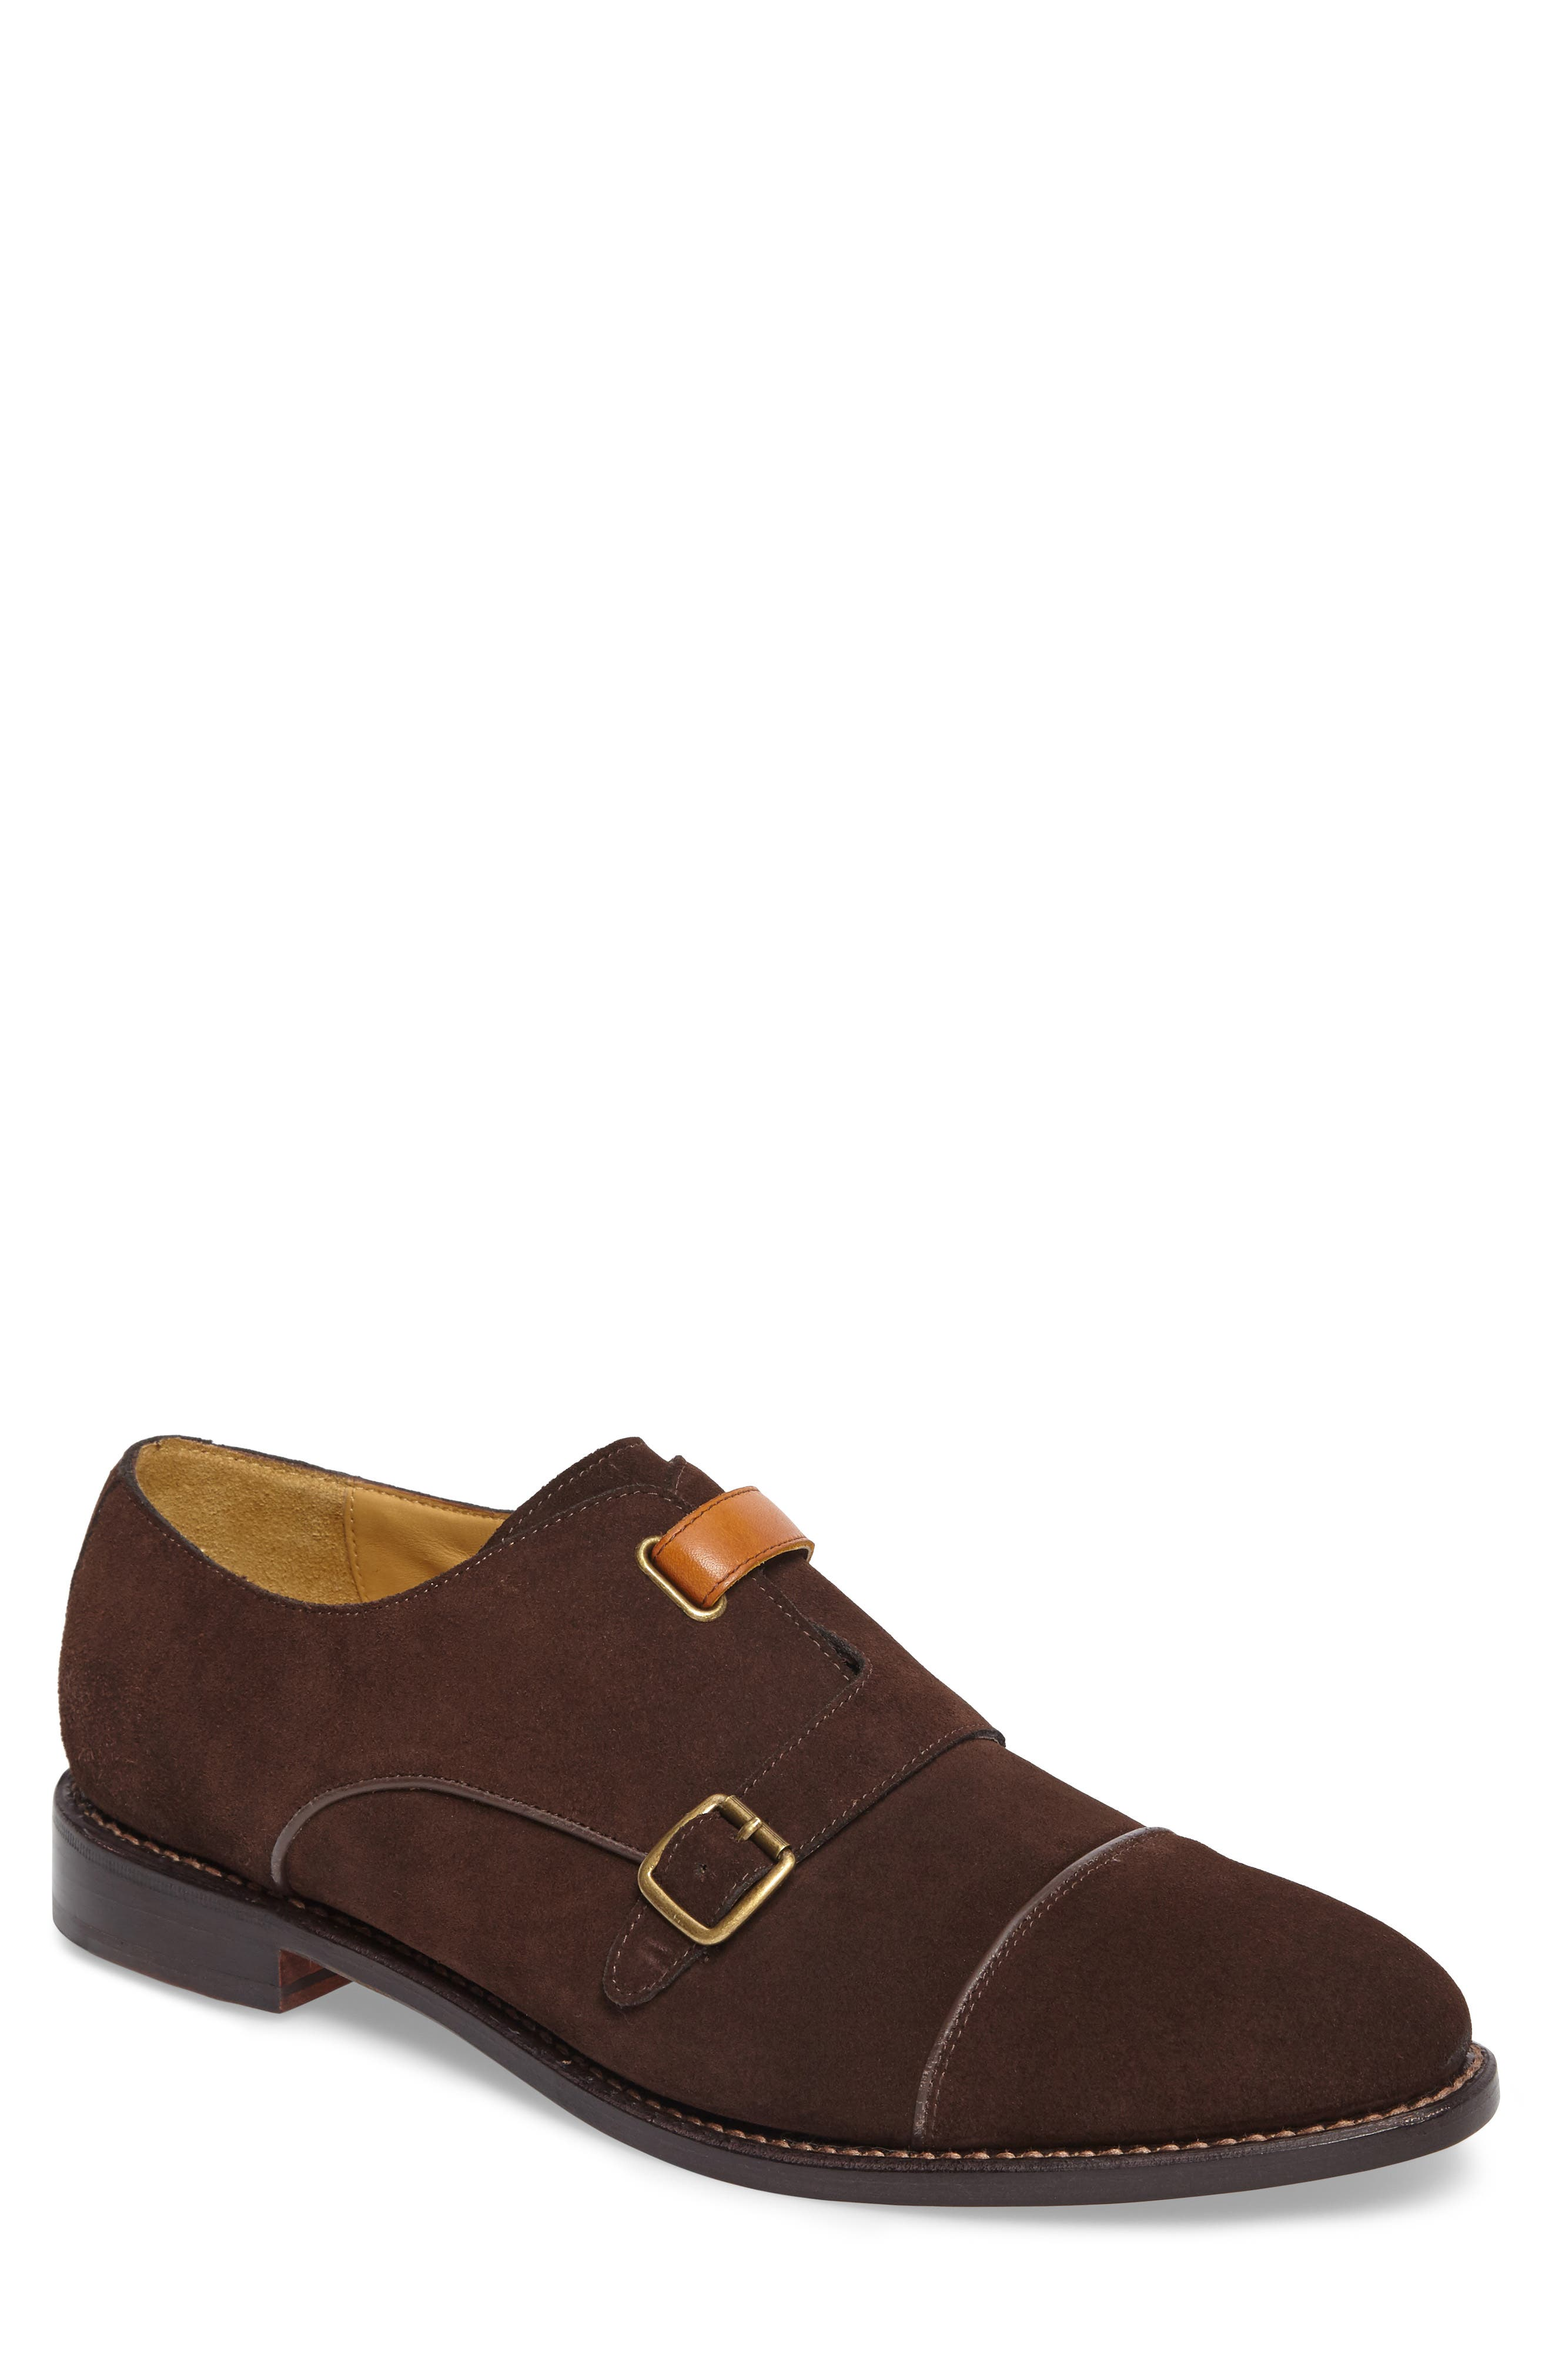 Alternate Image 1 Selected - Michael Bastian Brando Cap Toe Monk Shoe (Men)